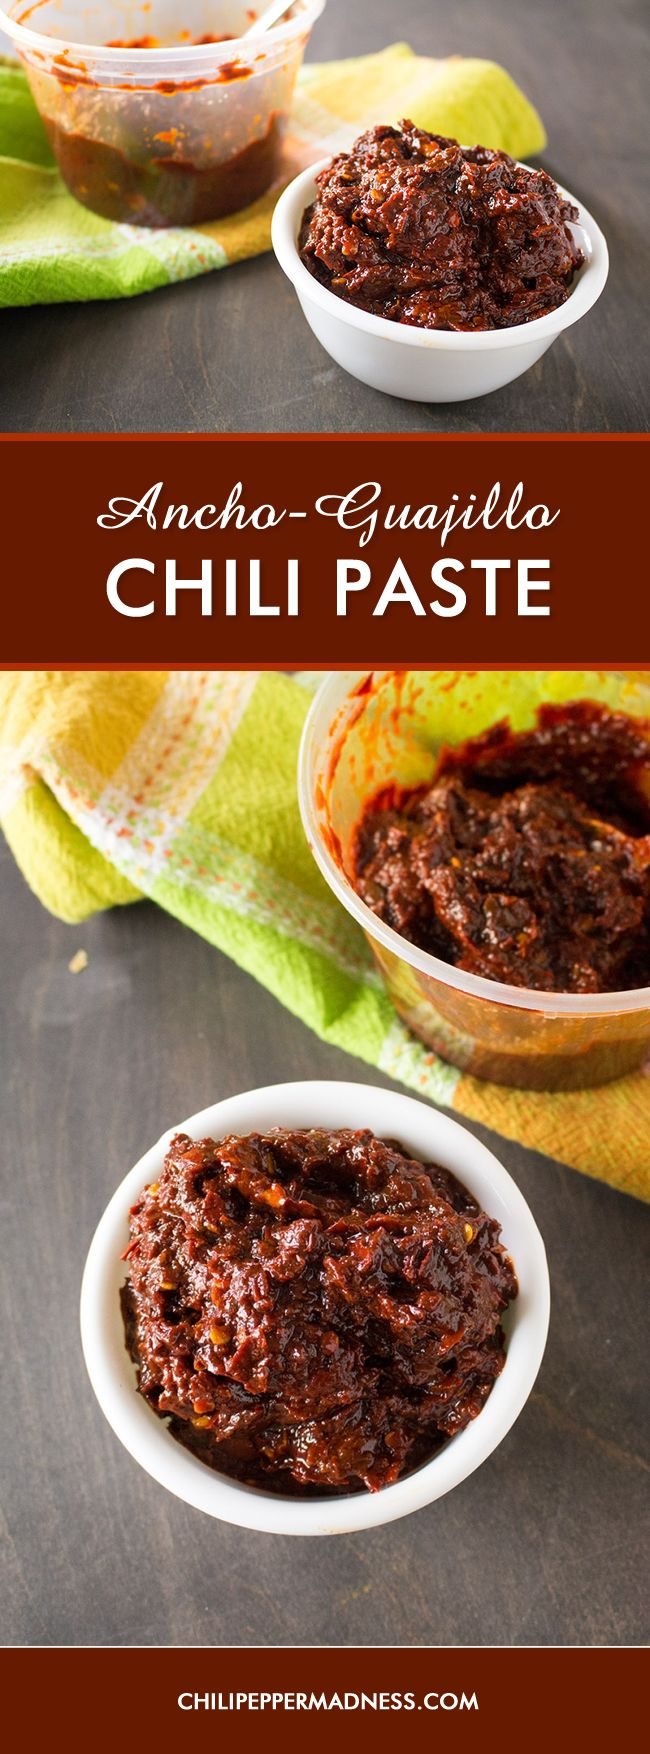 Ancho-Guajillo Paste – This is an all-purpose chili paste recipe made with ancho and guajillo chili peppers. Use it to flavor soups and stews, pasta sauces, slow cooker recipes and so much more. I have this in the refrigerator all the time as a quick go-to for massive flavor.